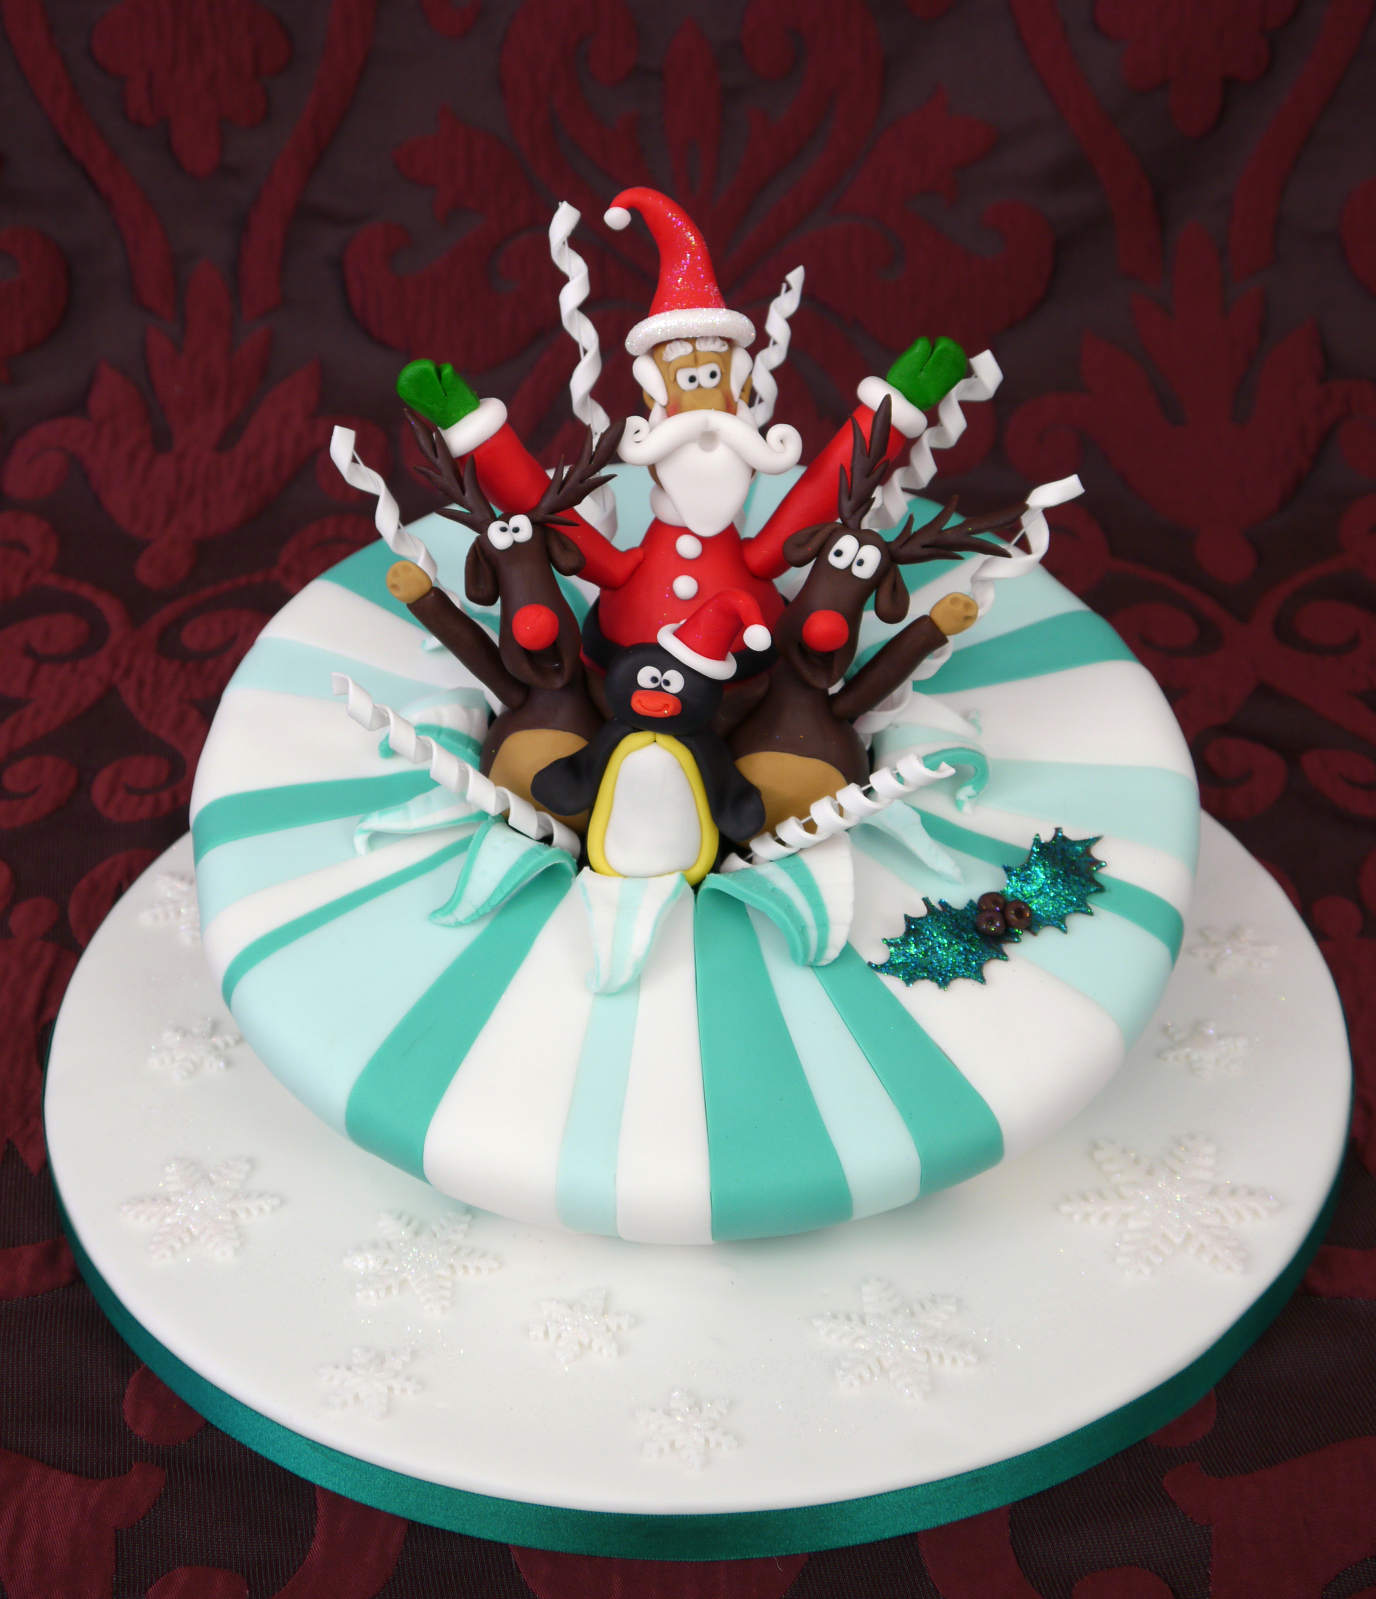 christmas cake decorations - Christmas Cake Decoration Ideas